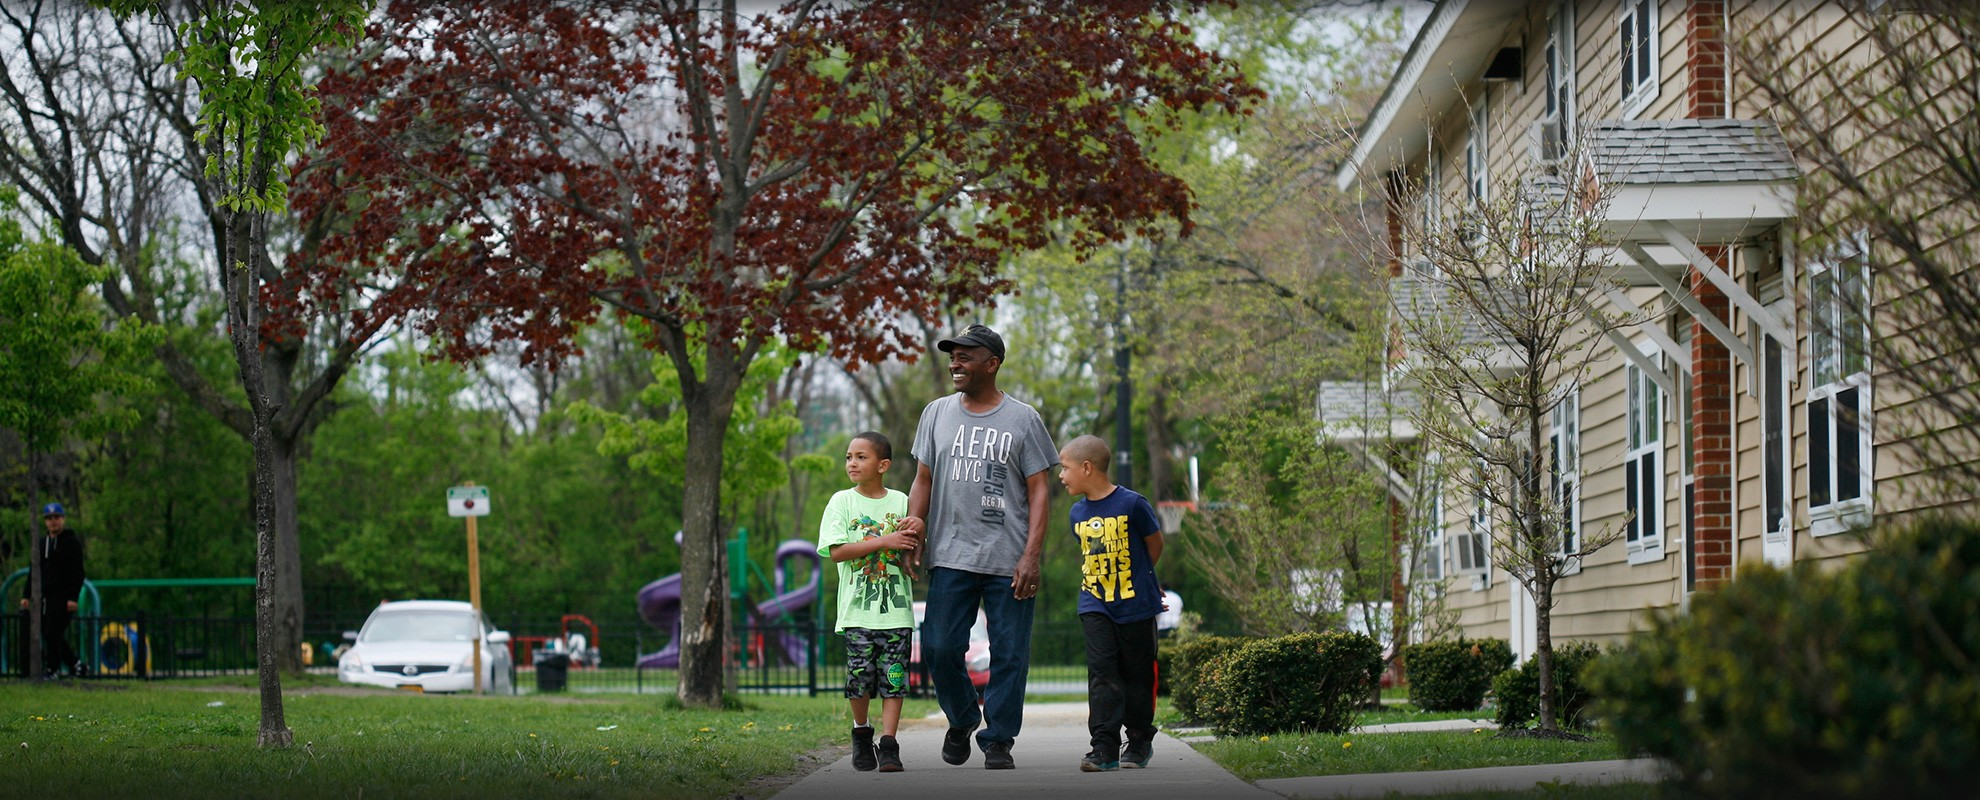 Be Be White, with his son Brayton (left) and Jahcere, walk through the Ezra Prentice complex.